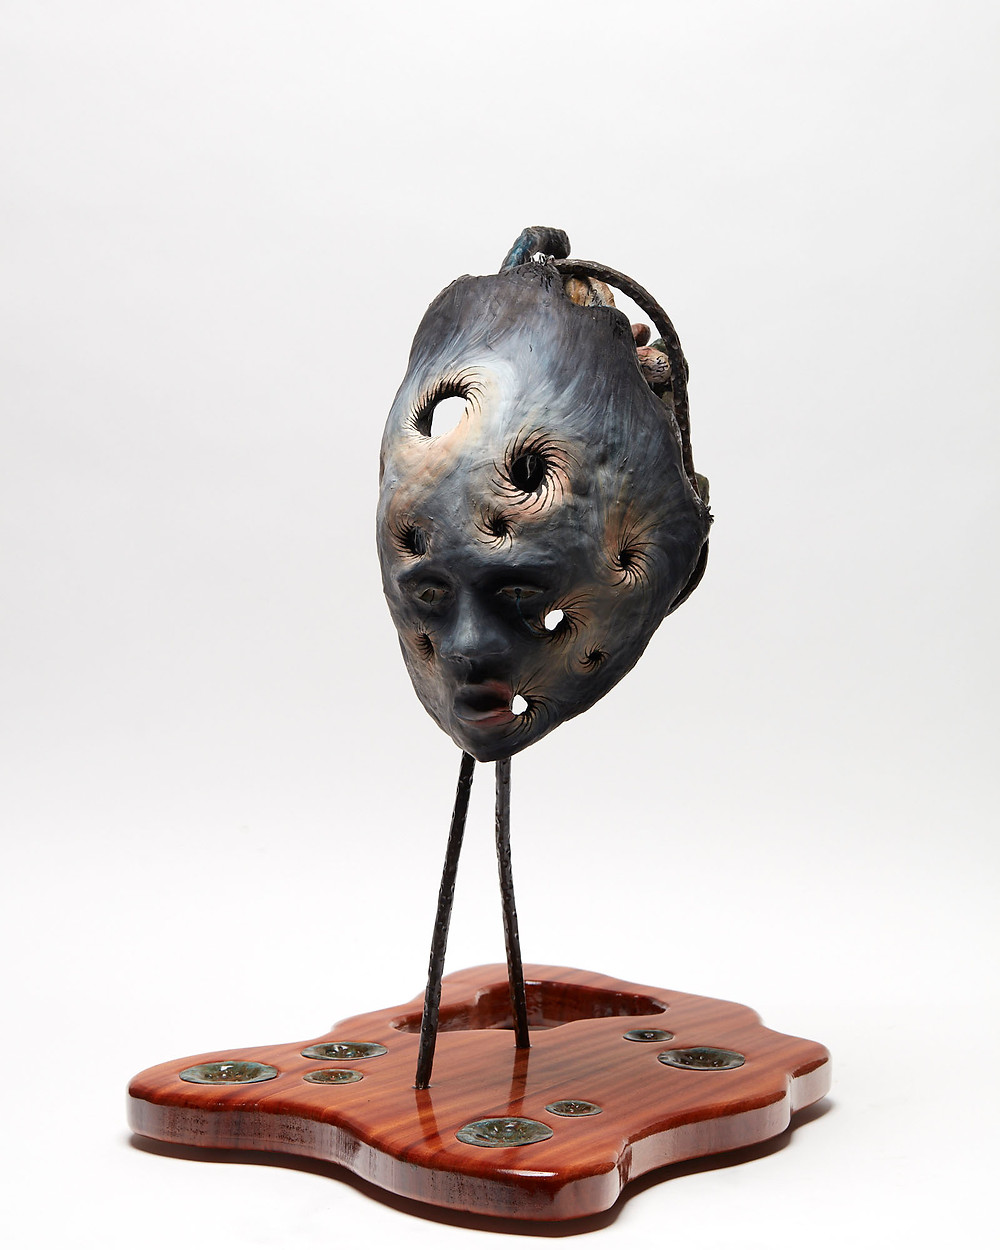 Oil painting sculpture of a head depicting the mental health of Dementia